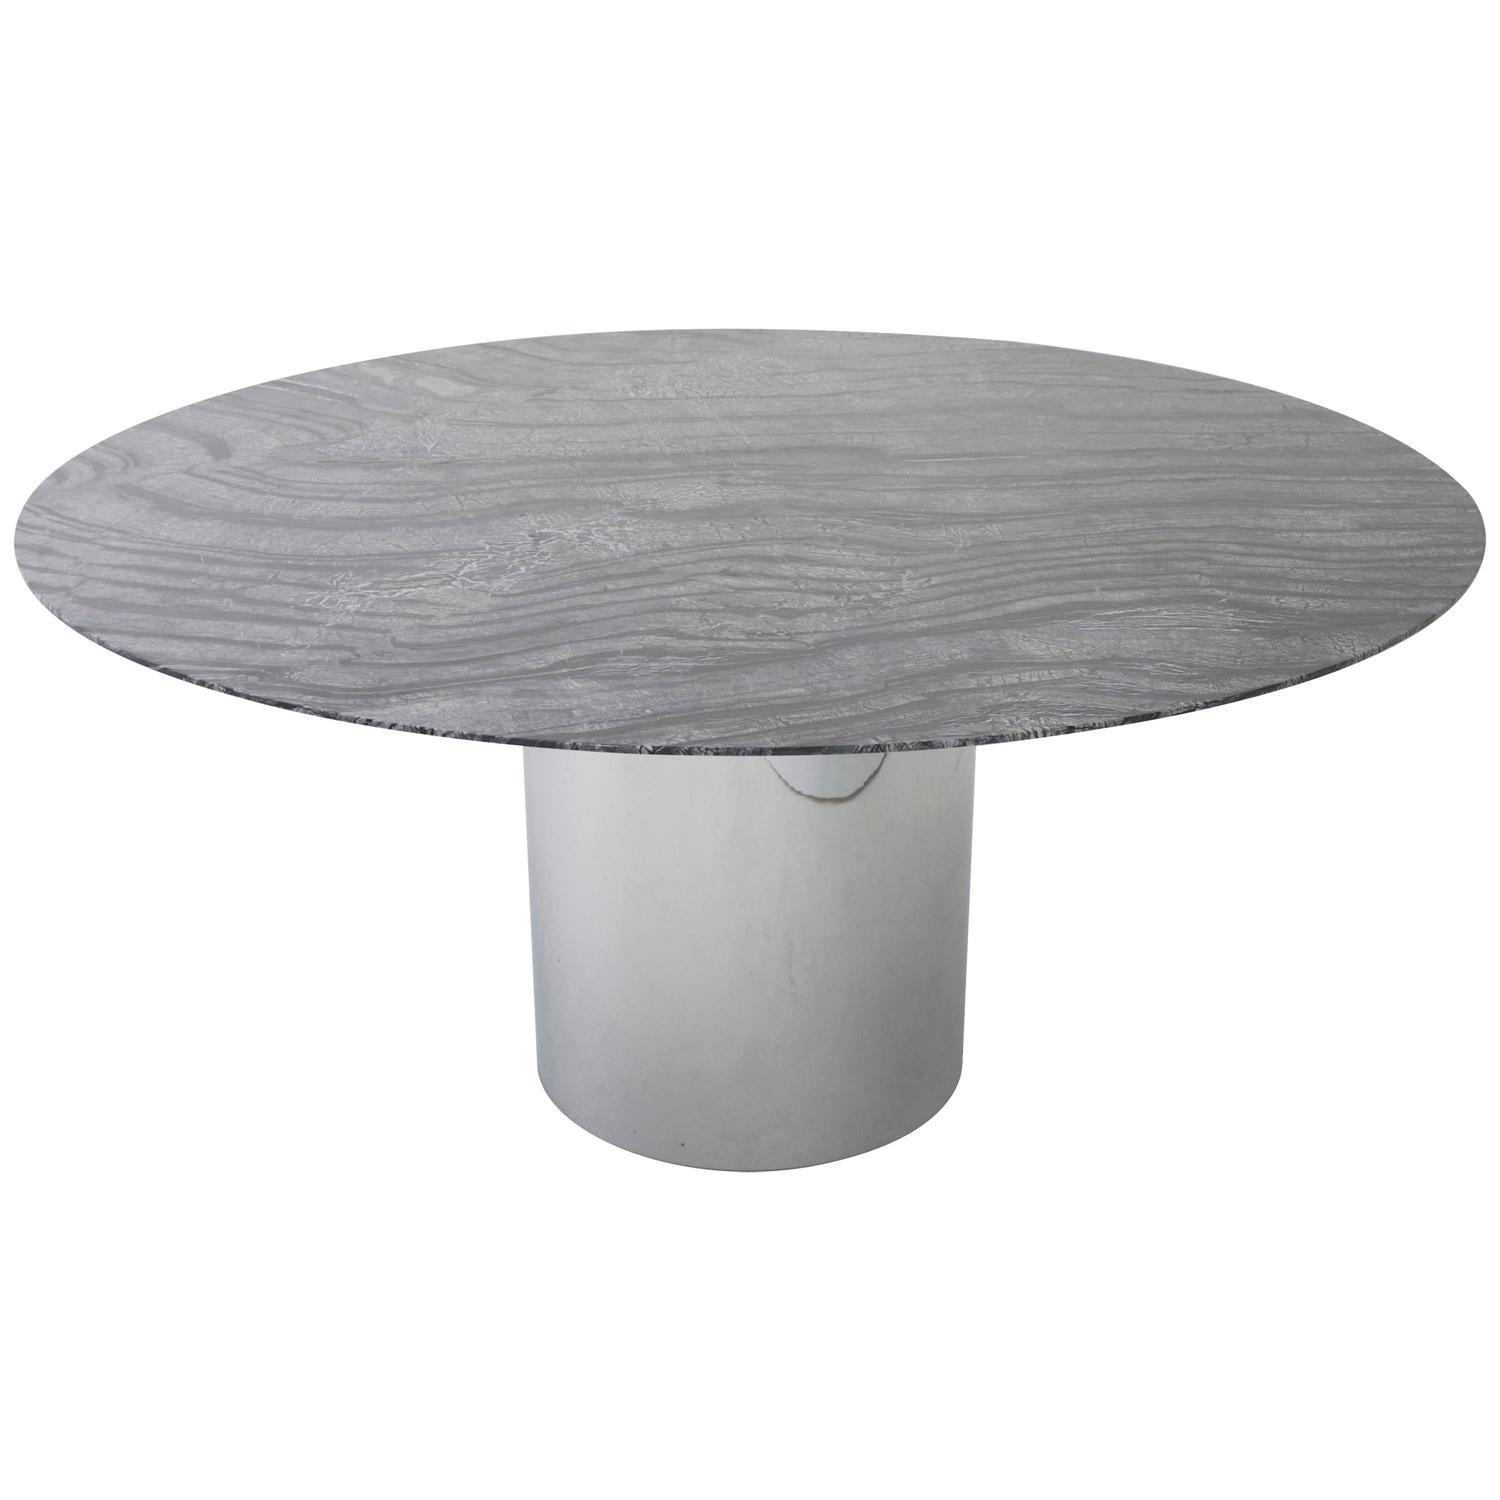 "Knoll Dining Table with 60"" Round Marble Top at 1stdibs"